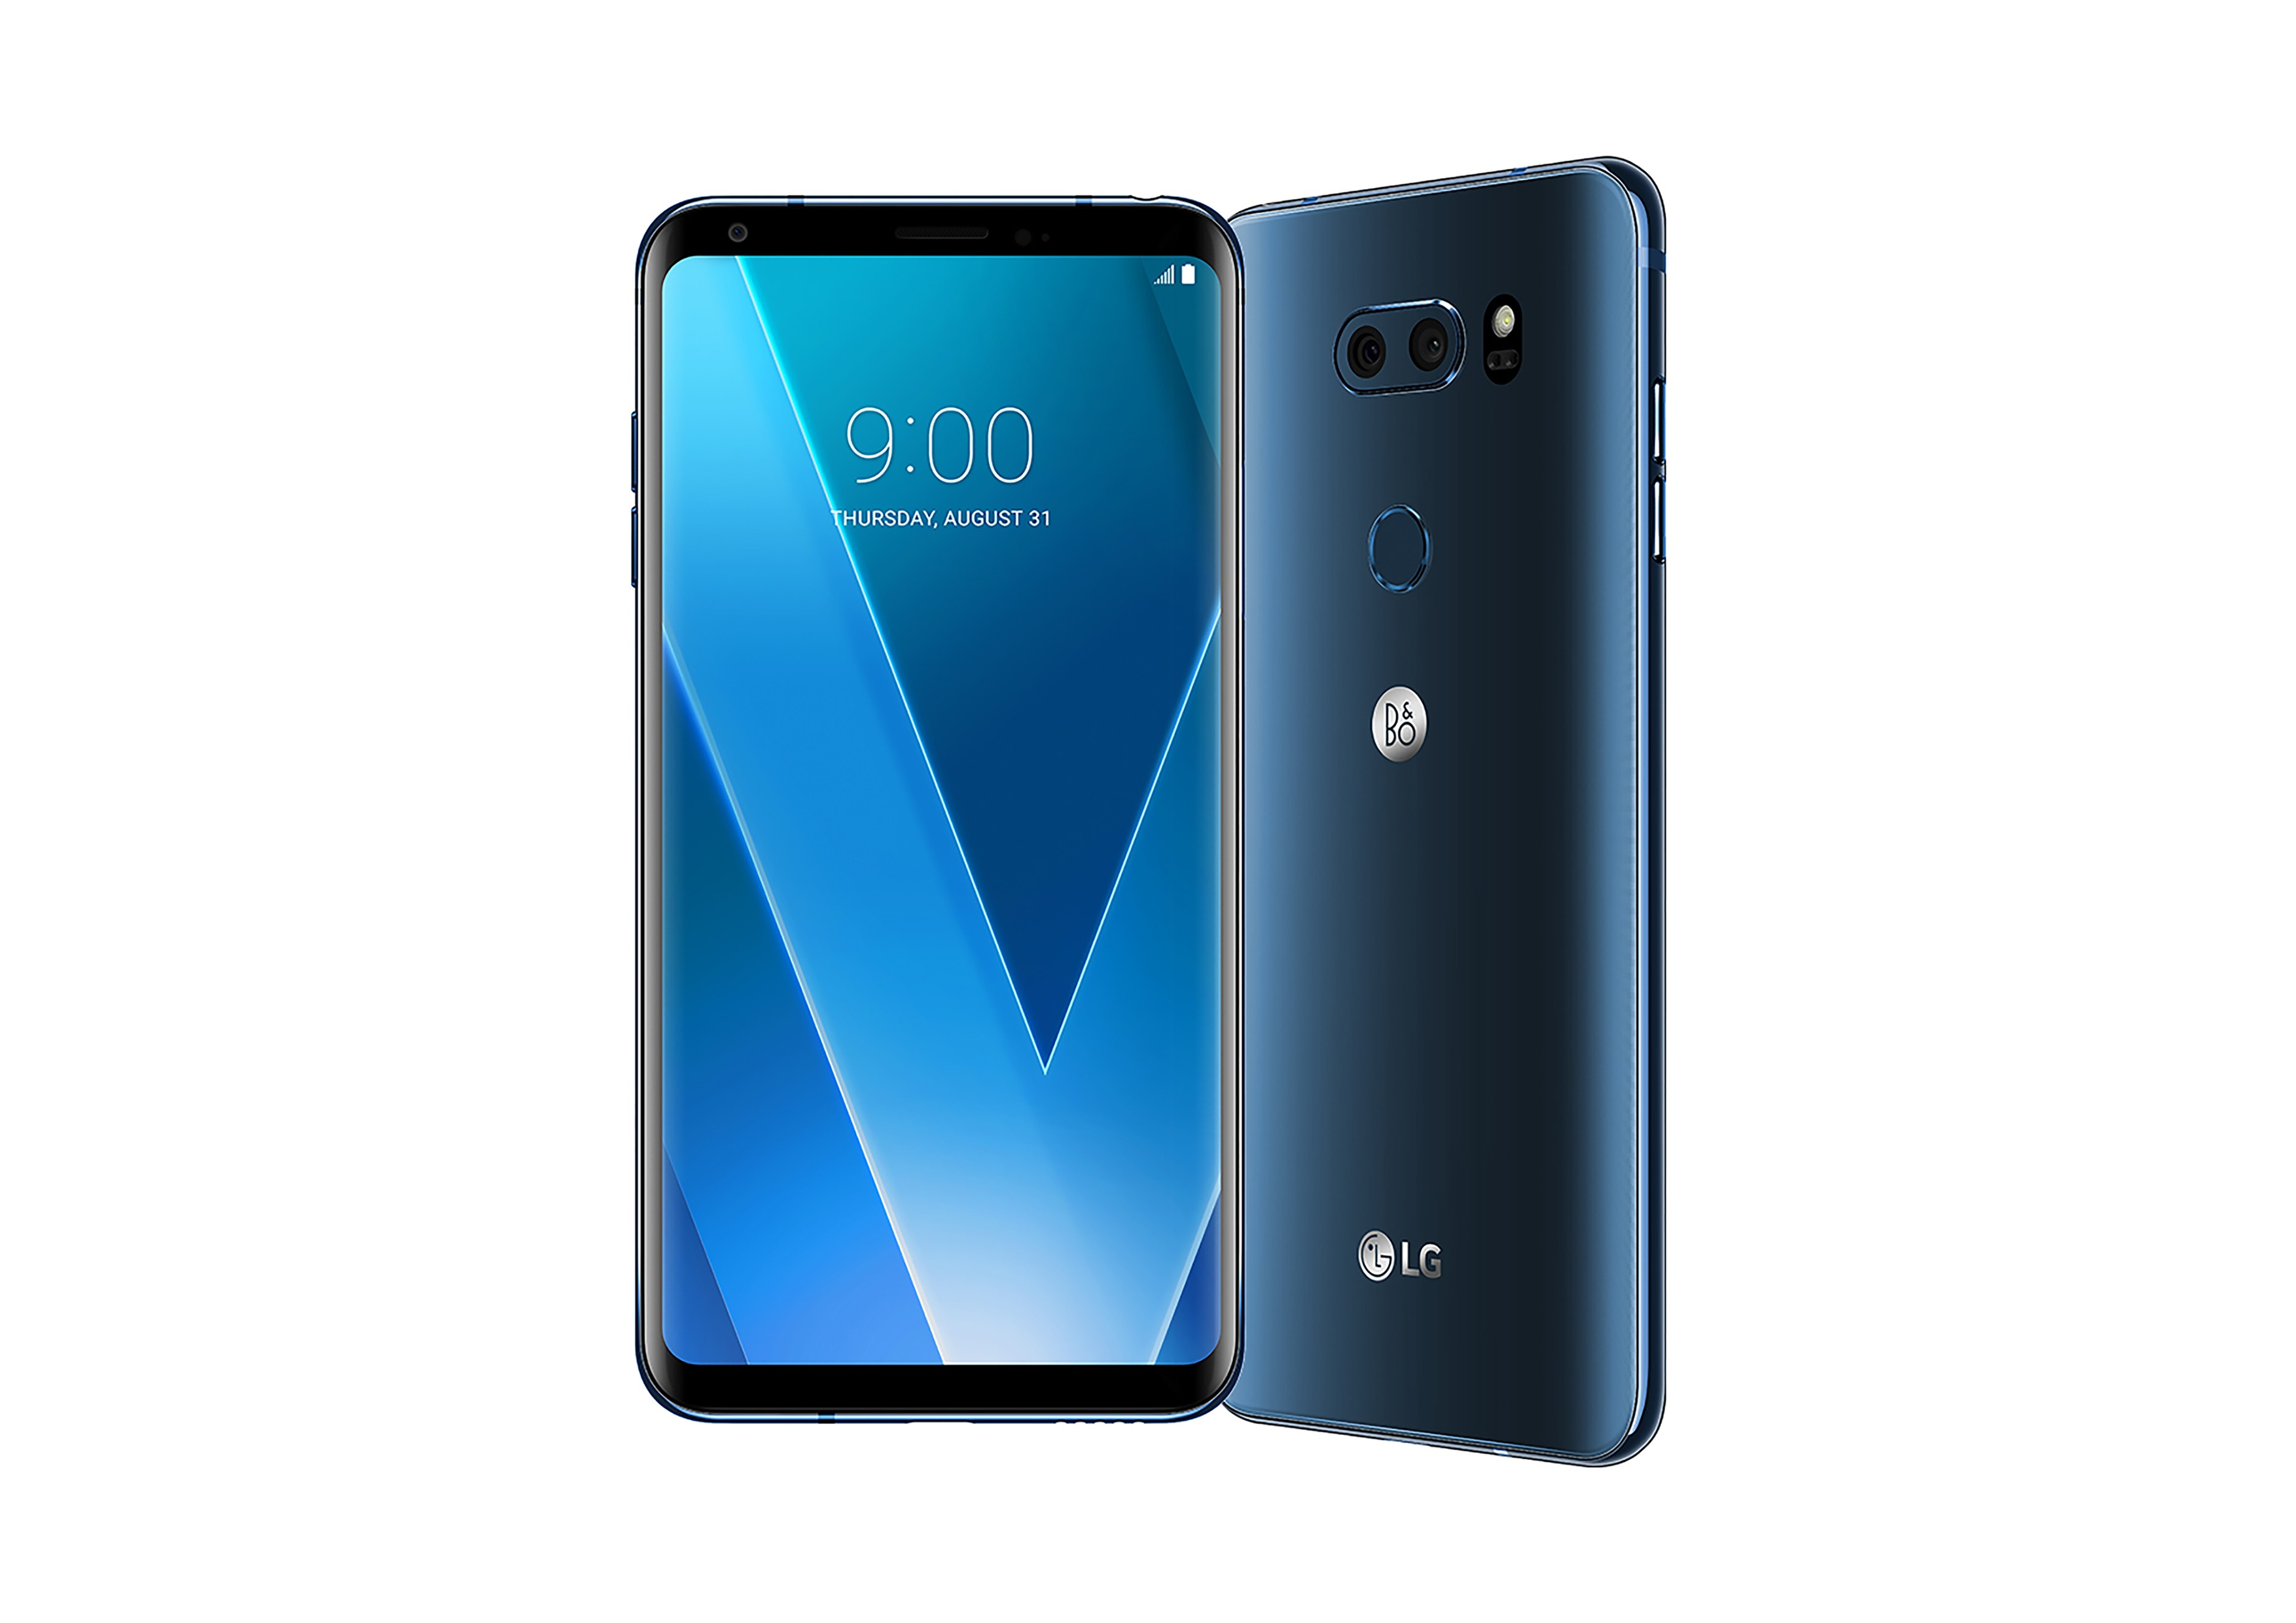 LG V30 CHARTS NEW MOBILE FRONTIER WITH PREMIUM CINEMATOGRAPHY CAPABILITIES | LG Newsroom